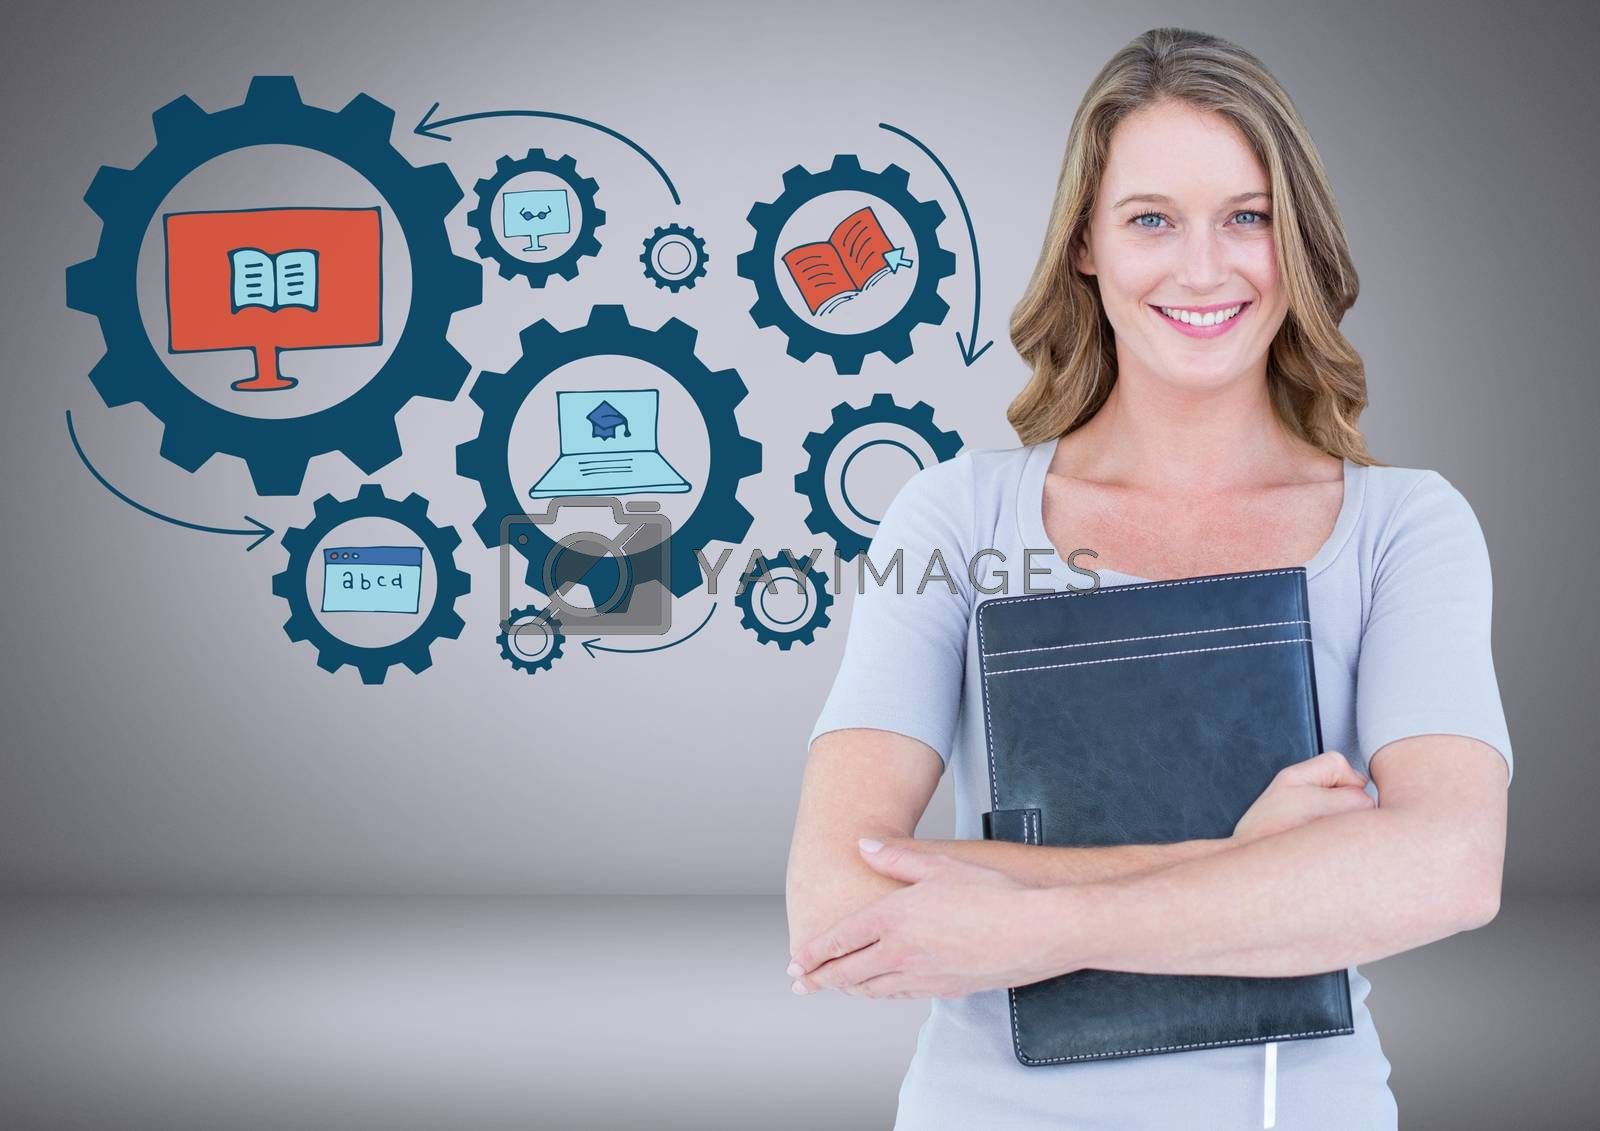 Digital composite of Woman with education graphics drawings